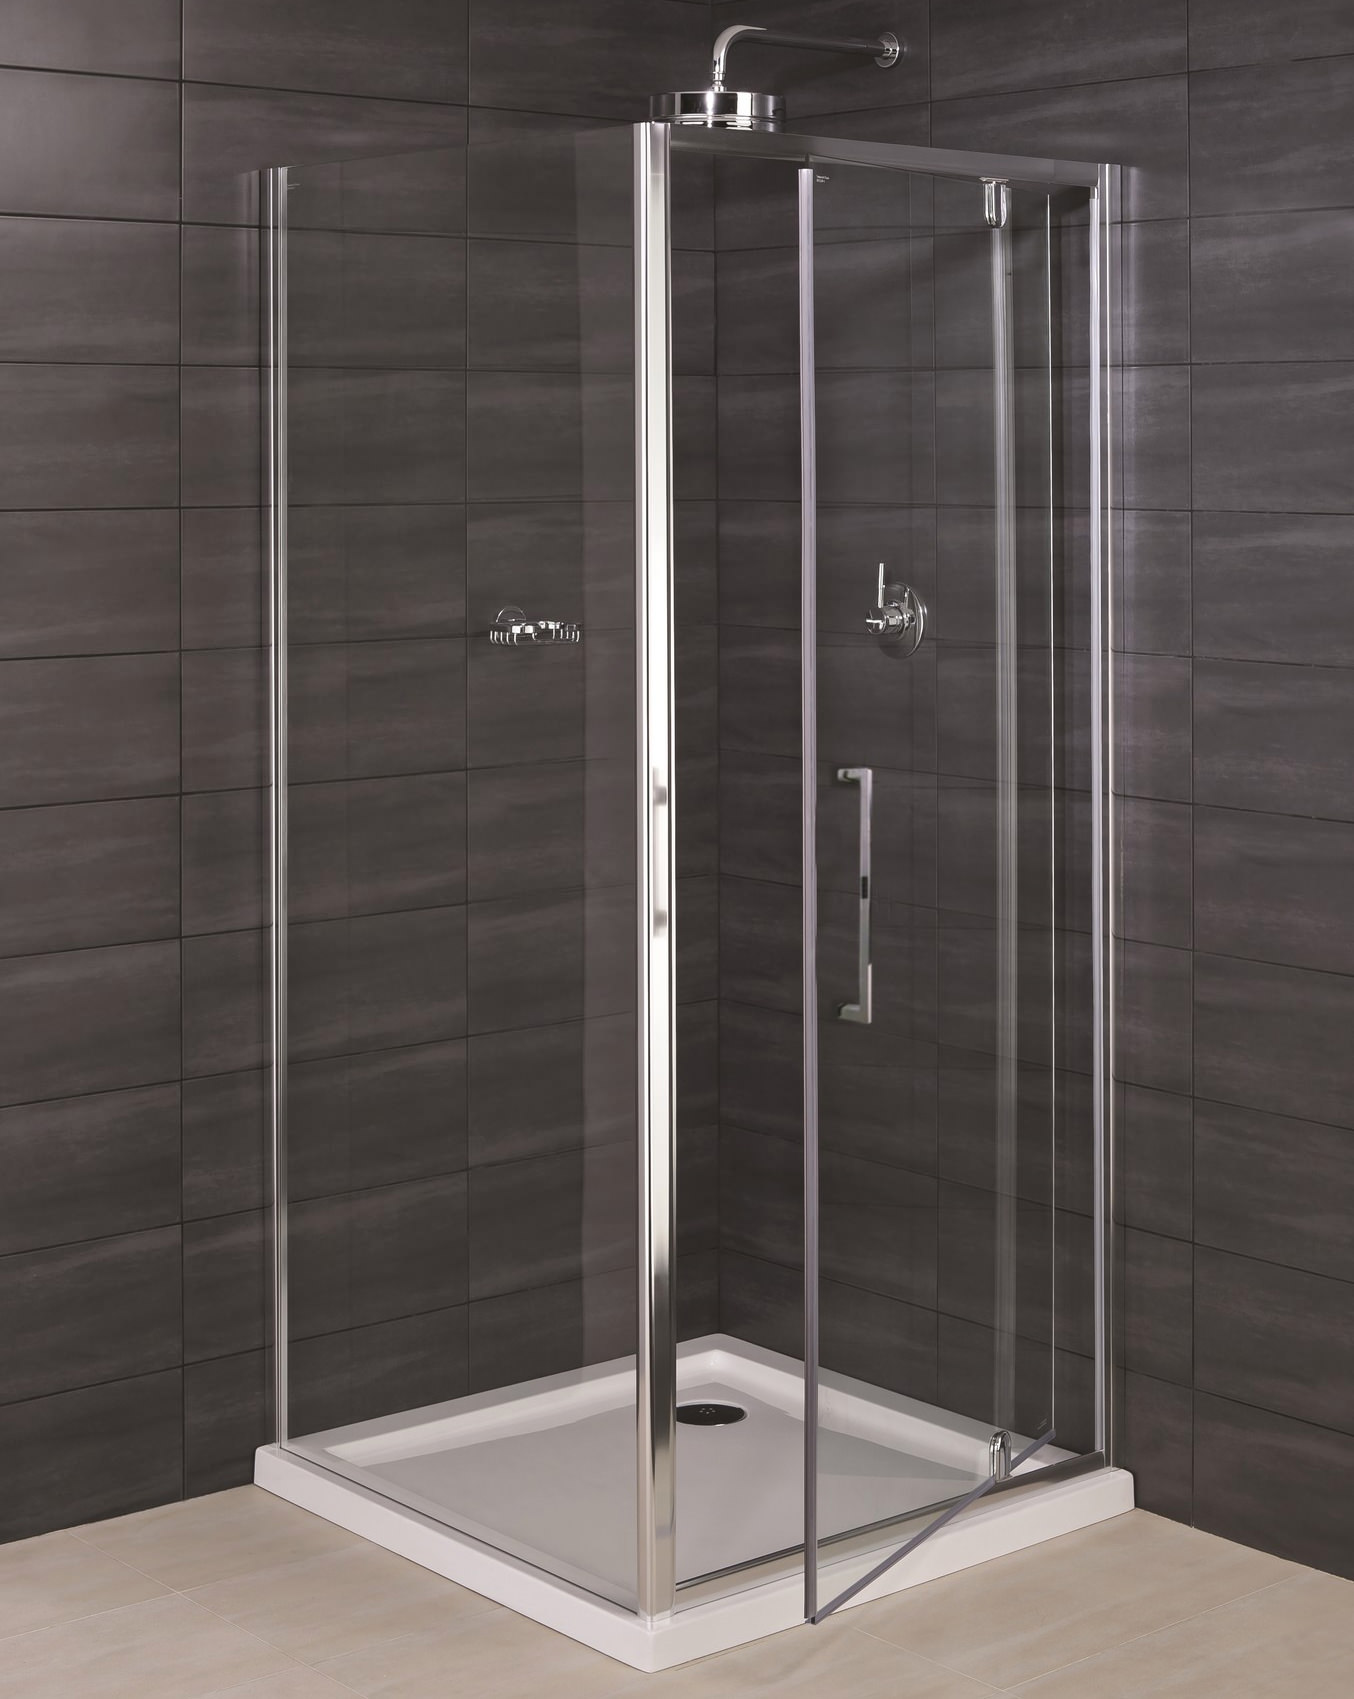 Rak Deluxe 8 Pivot Shower Enclosure Door 900mm Rak8piv900